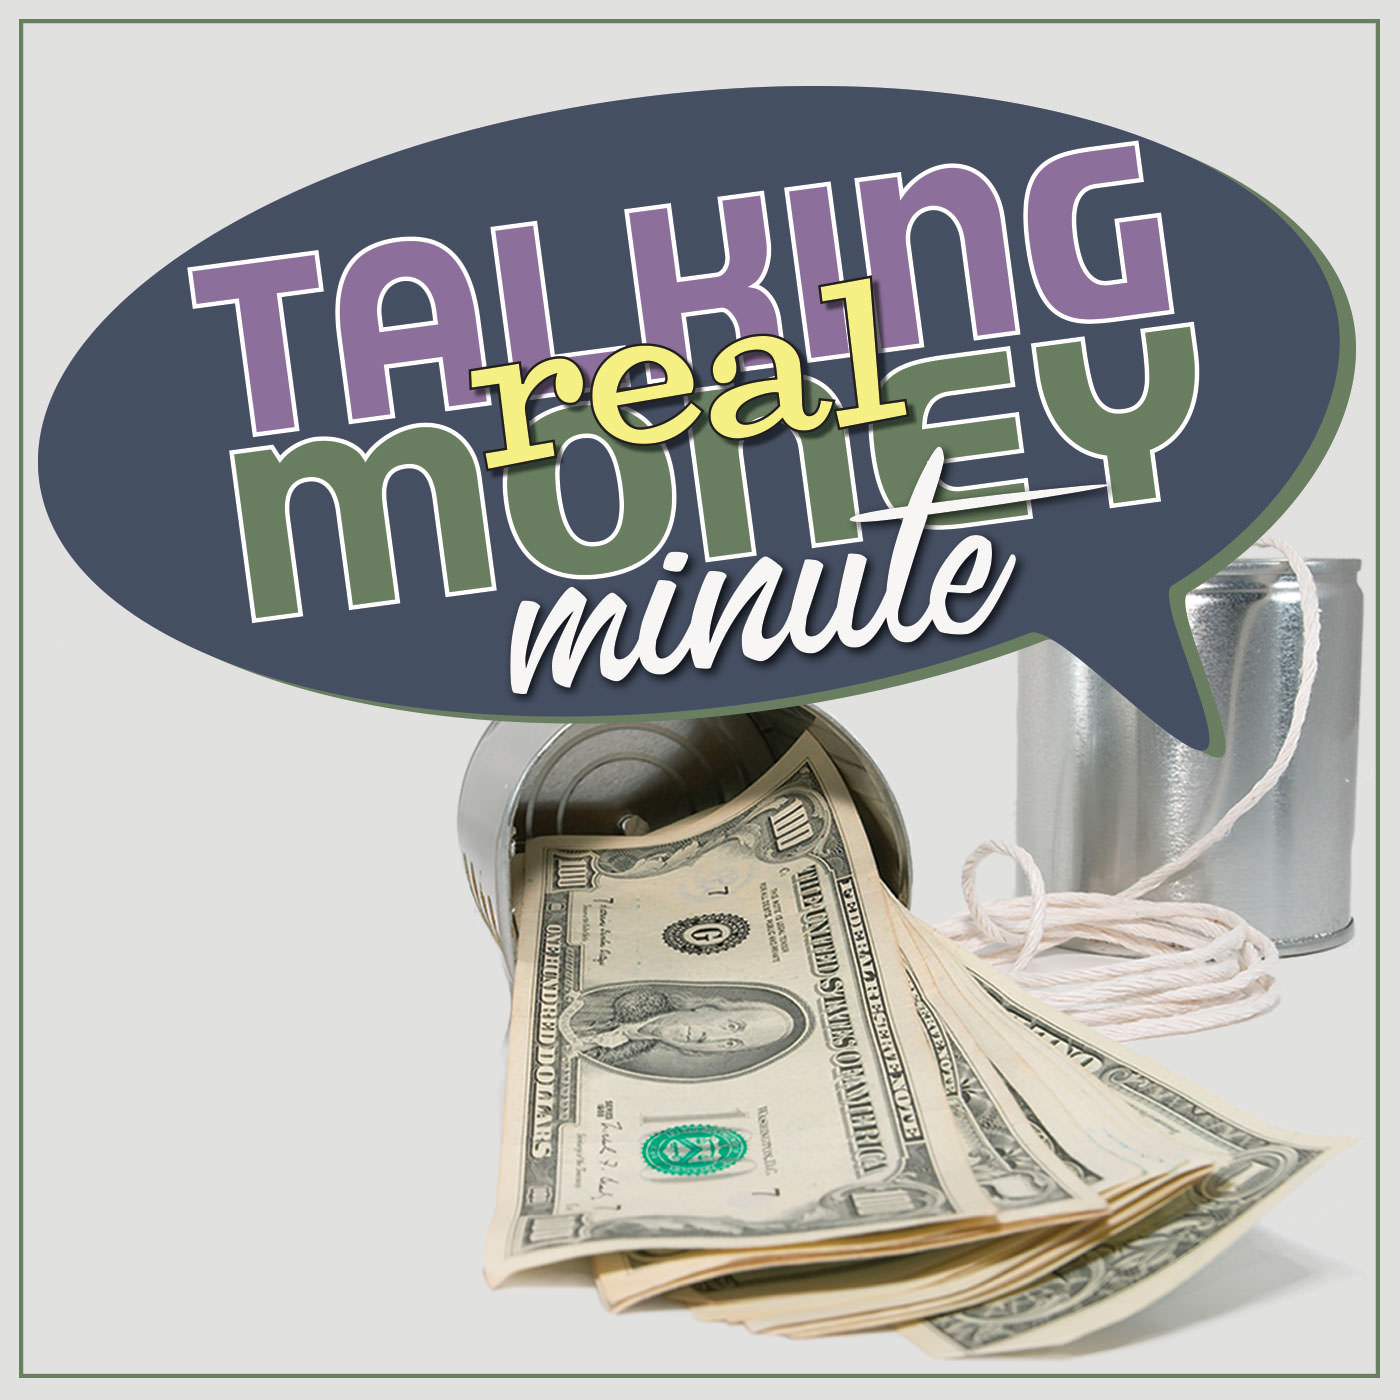 Talking Real Money Minutes - Talking Real Money